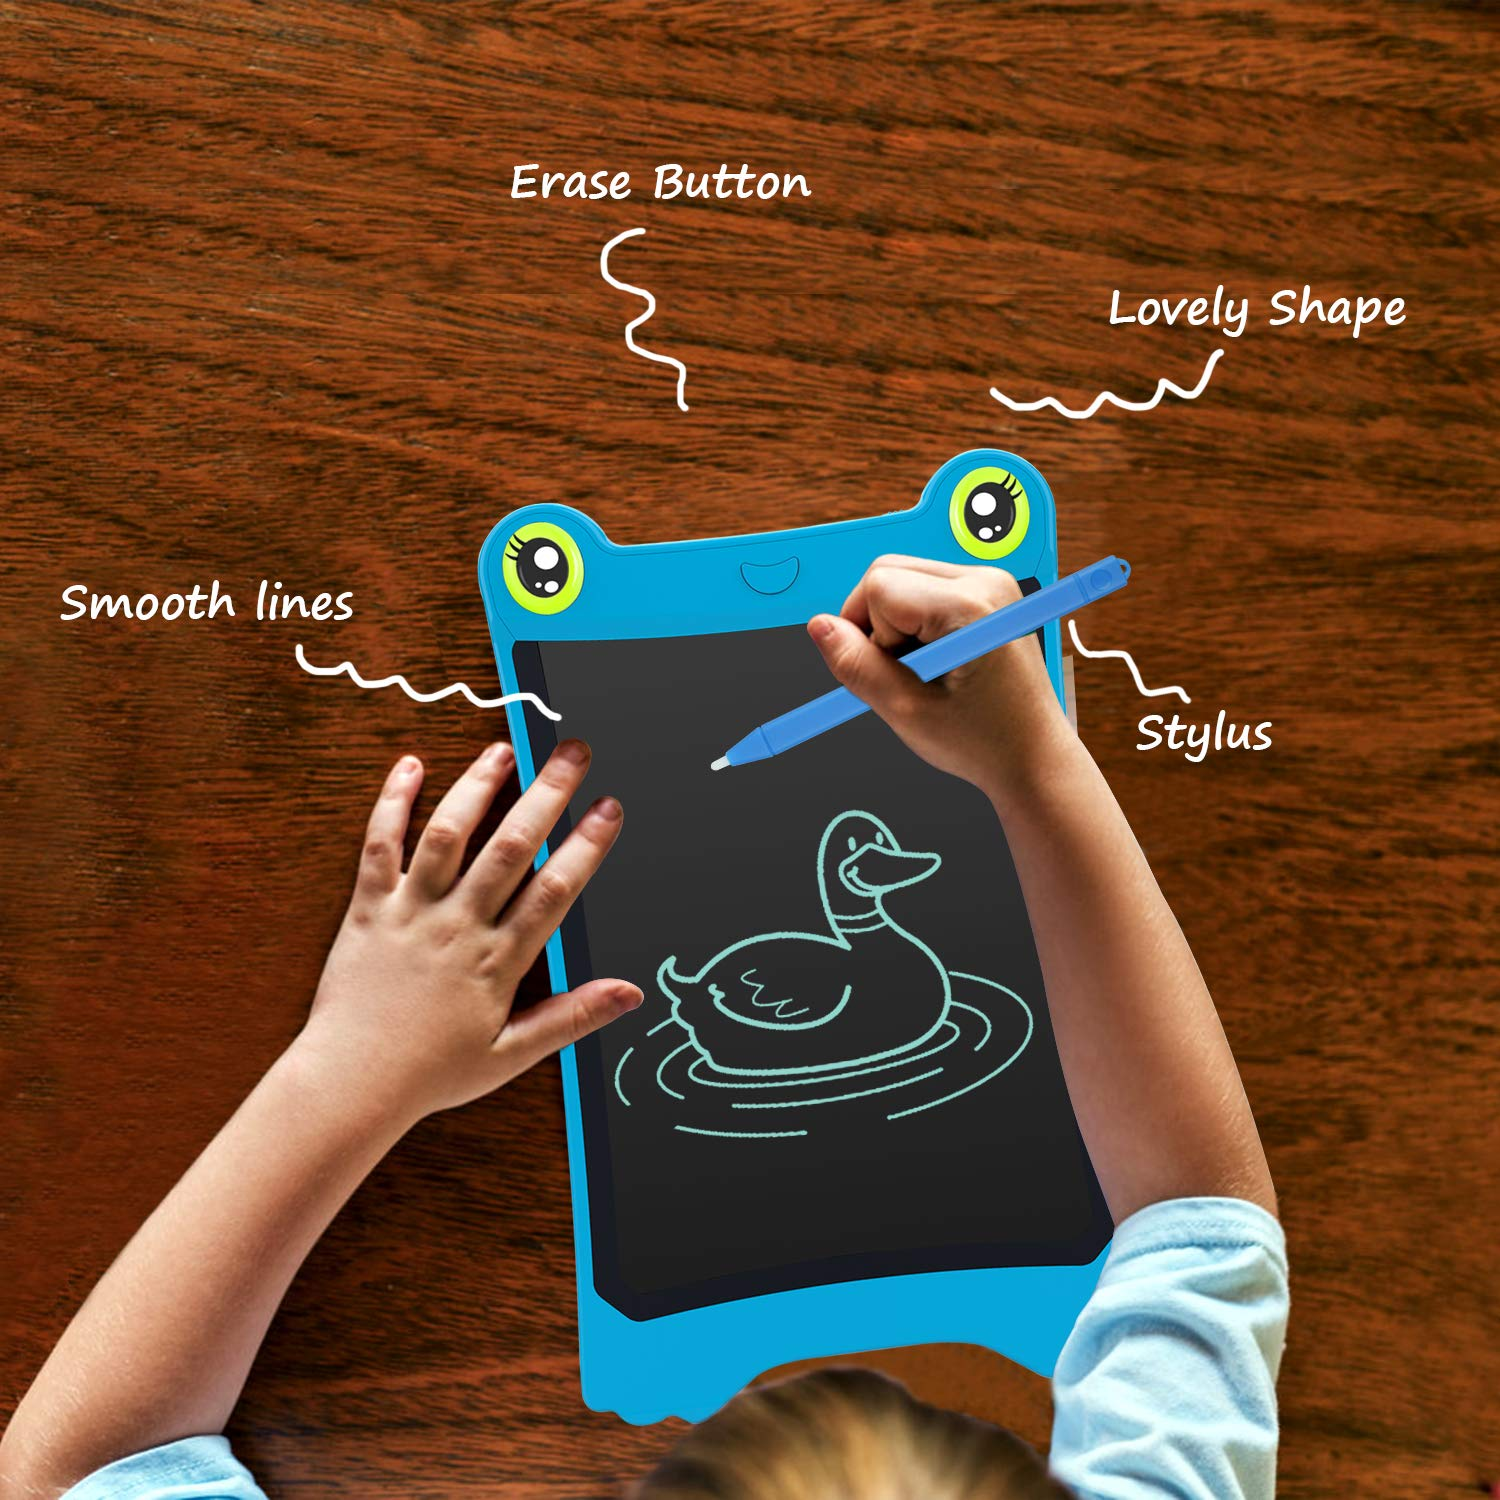 NEWYES 8.5 Inch LCD Writing Tablet Updated Frog Pad Children Electronic Doodle Board Jot Digital E-Writer Kids Scribble Toy with Lock Function Blue by NEWYES (Image #3)